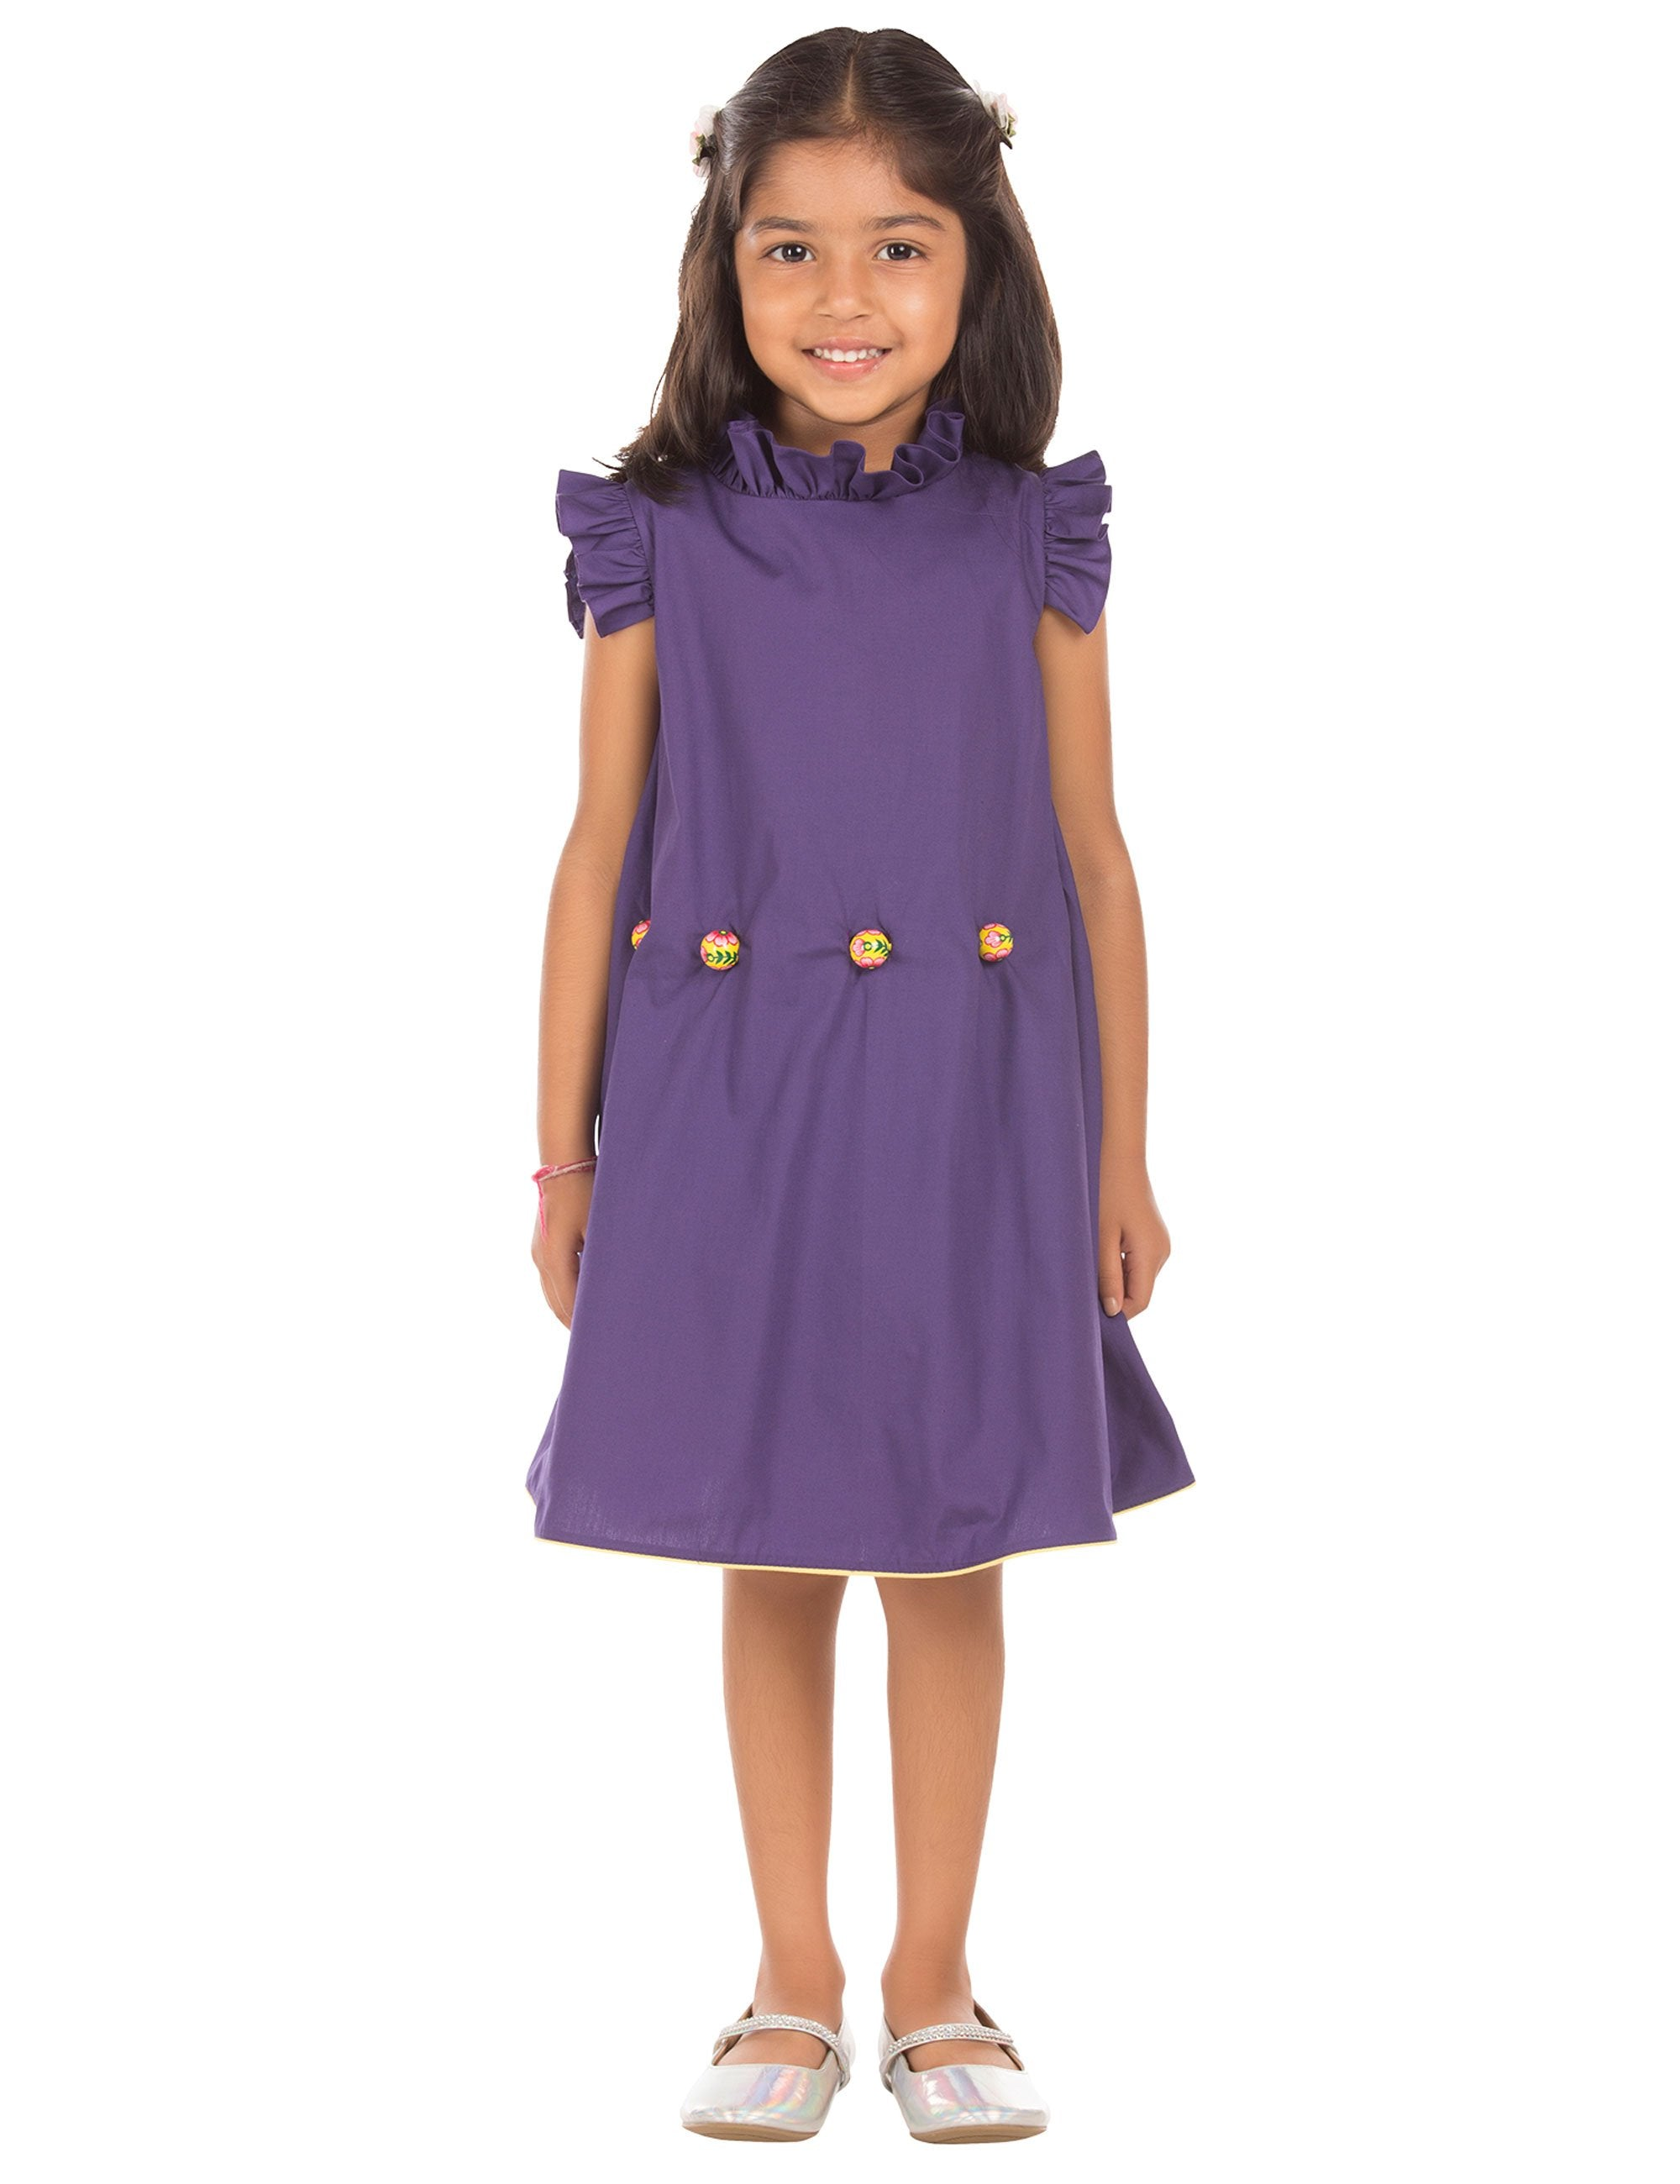 Cotton Dress with Ruffled Collar in Purple Colour for Girls